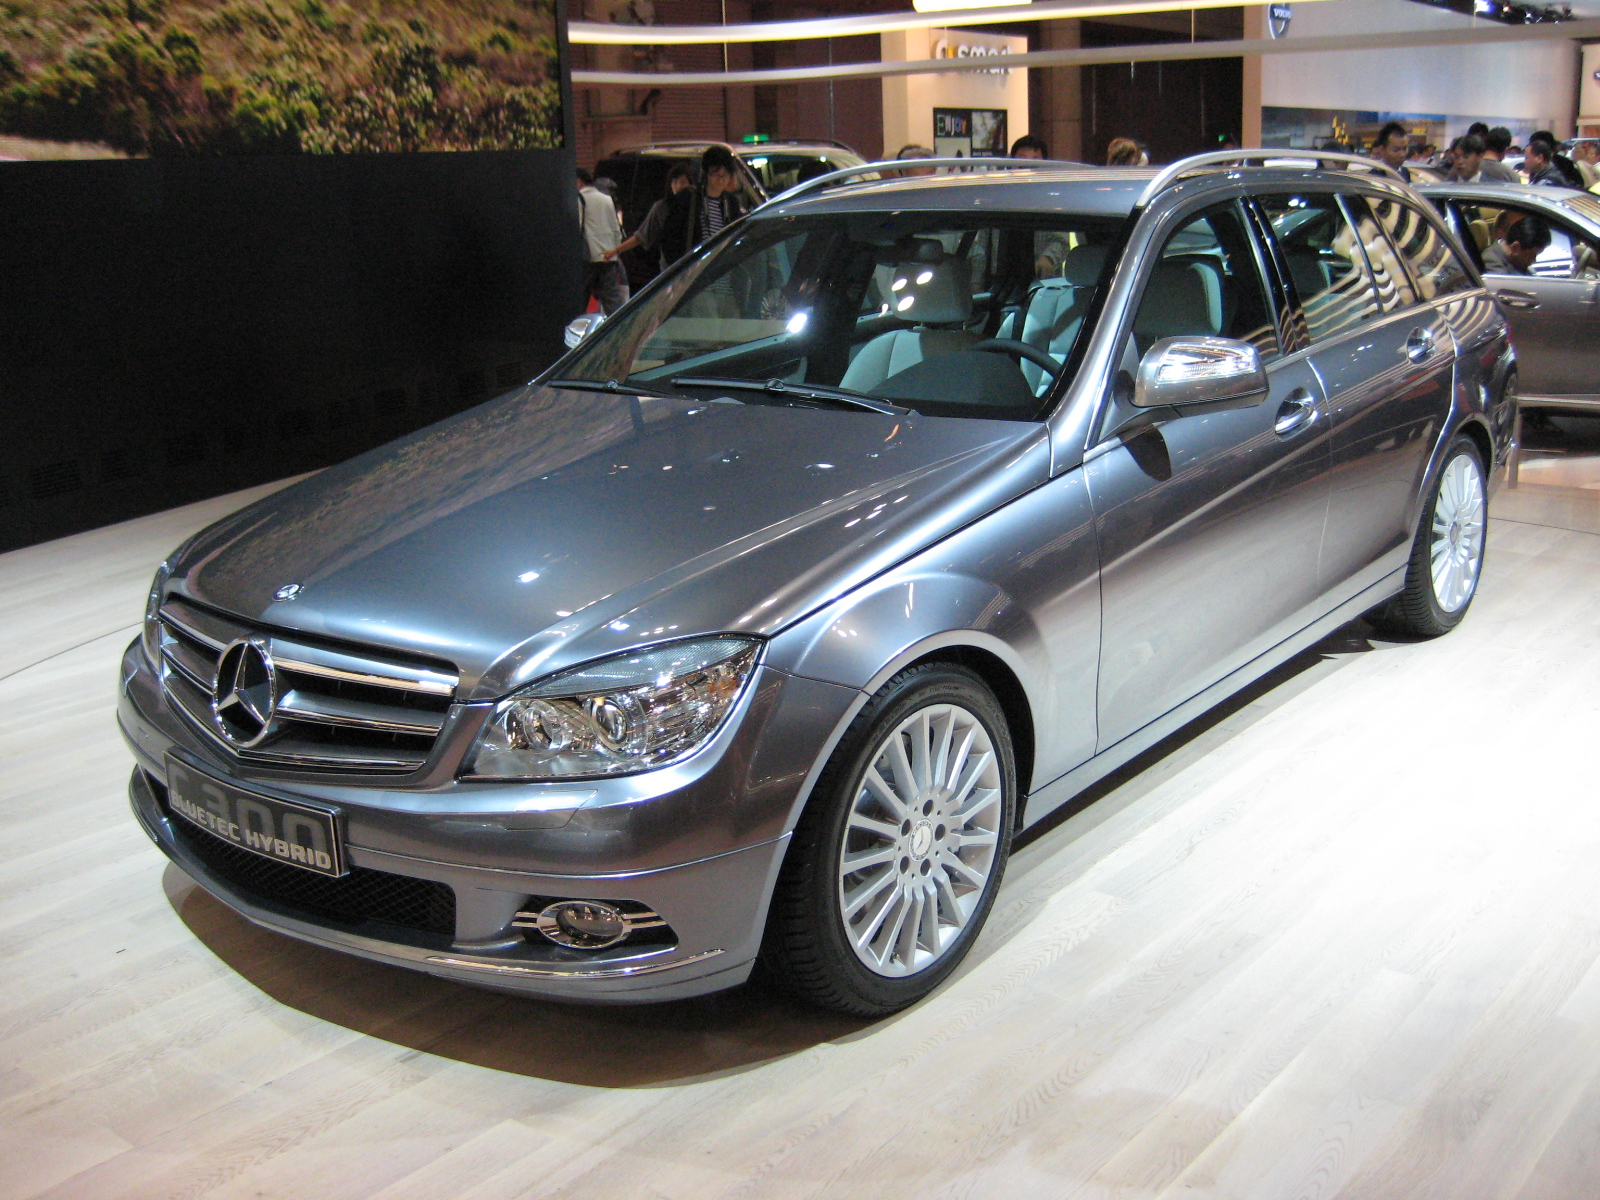 file mercedes benz c300 bluetec hybrid jpg wikimedia commons. Black Bedroom Furniture Sets. Home Design Ideas